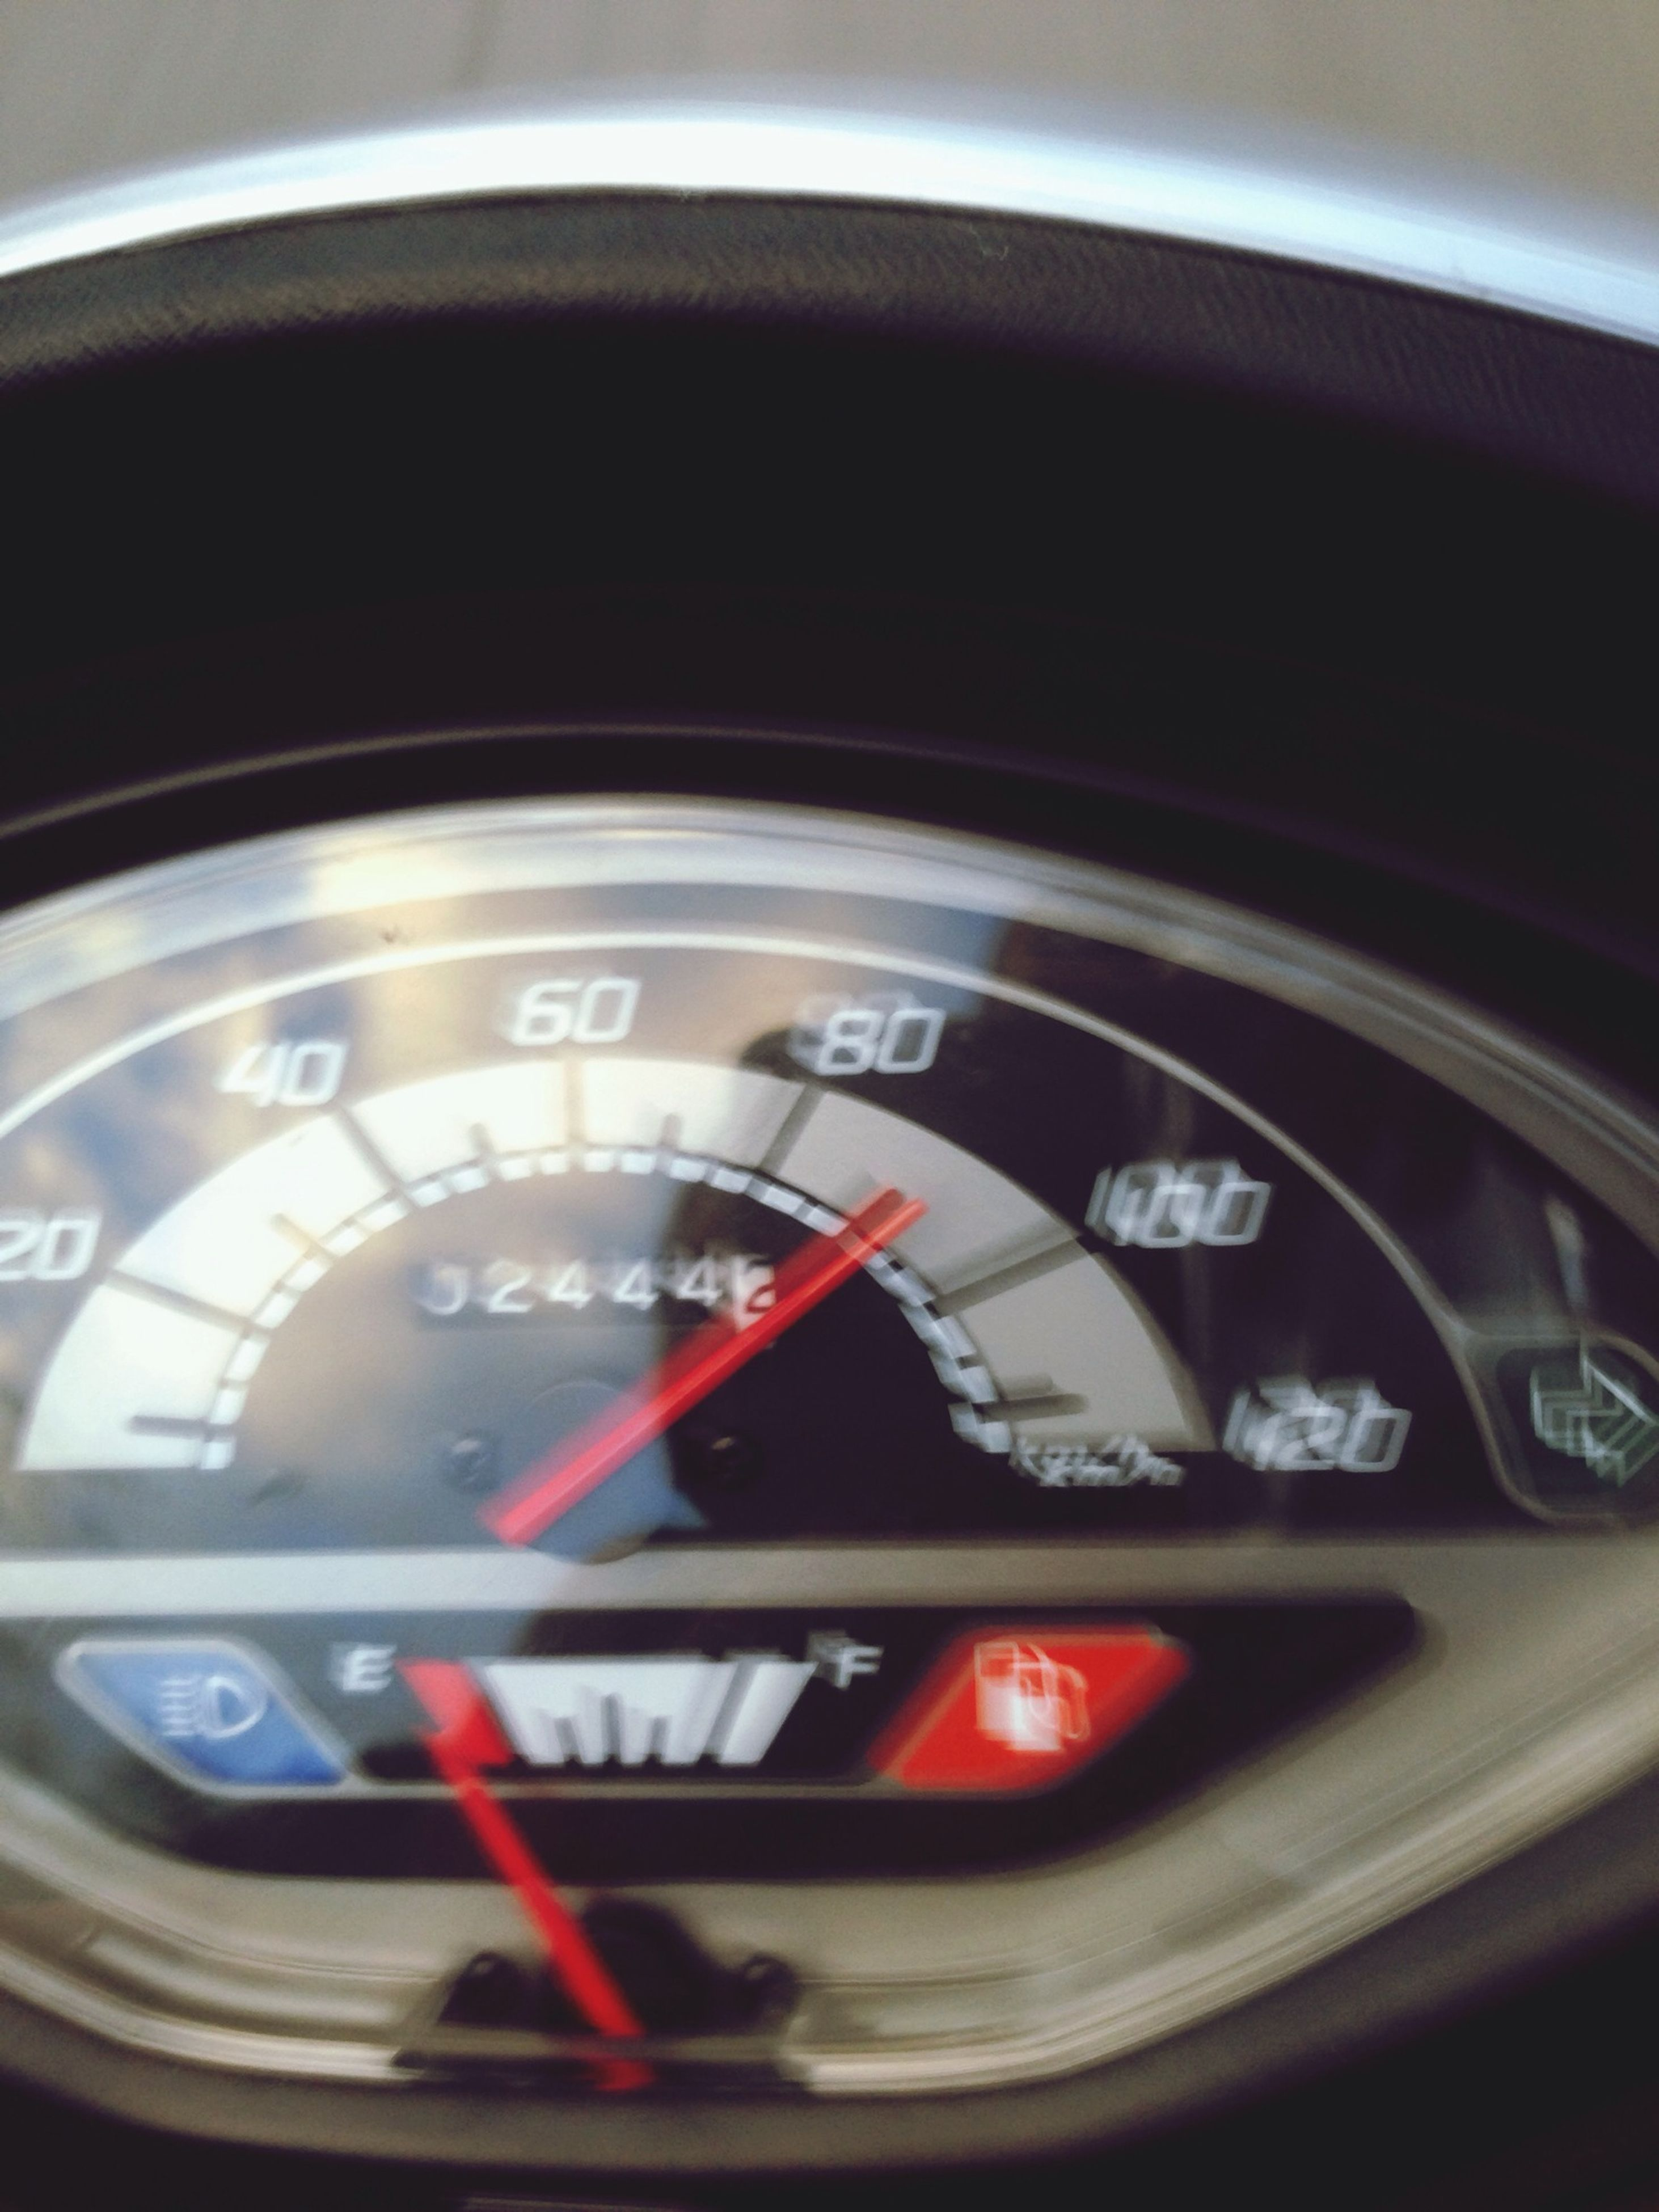 transportation, mode of transport, land vehicle, car, vehicle interior, travel, car interior, indoors, dashboard, speedometer, part of, close-up, speed, number, steering wheel, vehicle part, on the move, no people, stationary, windshield